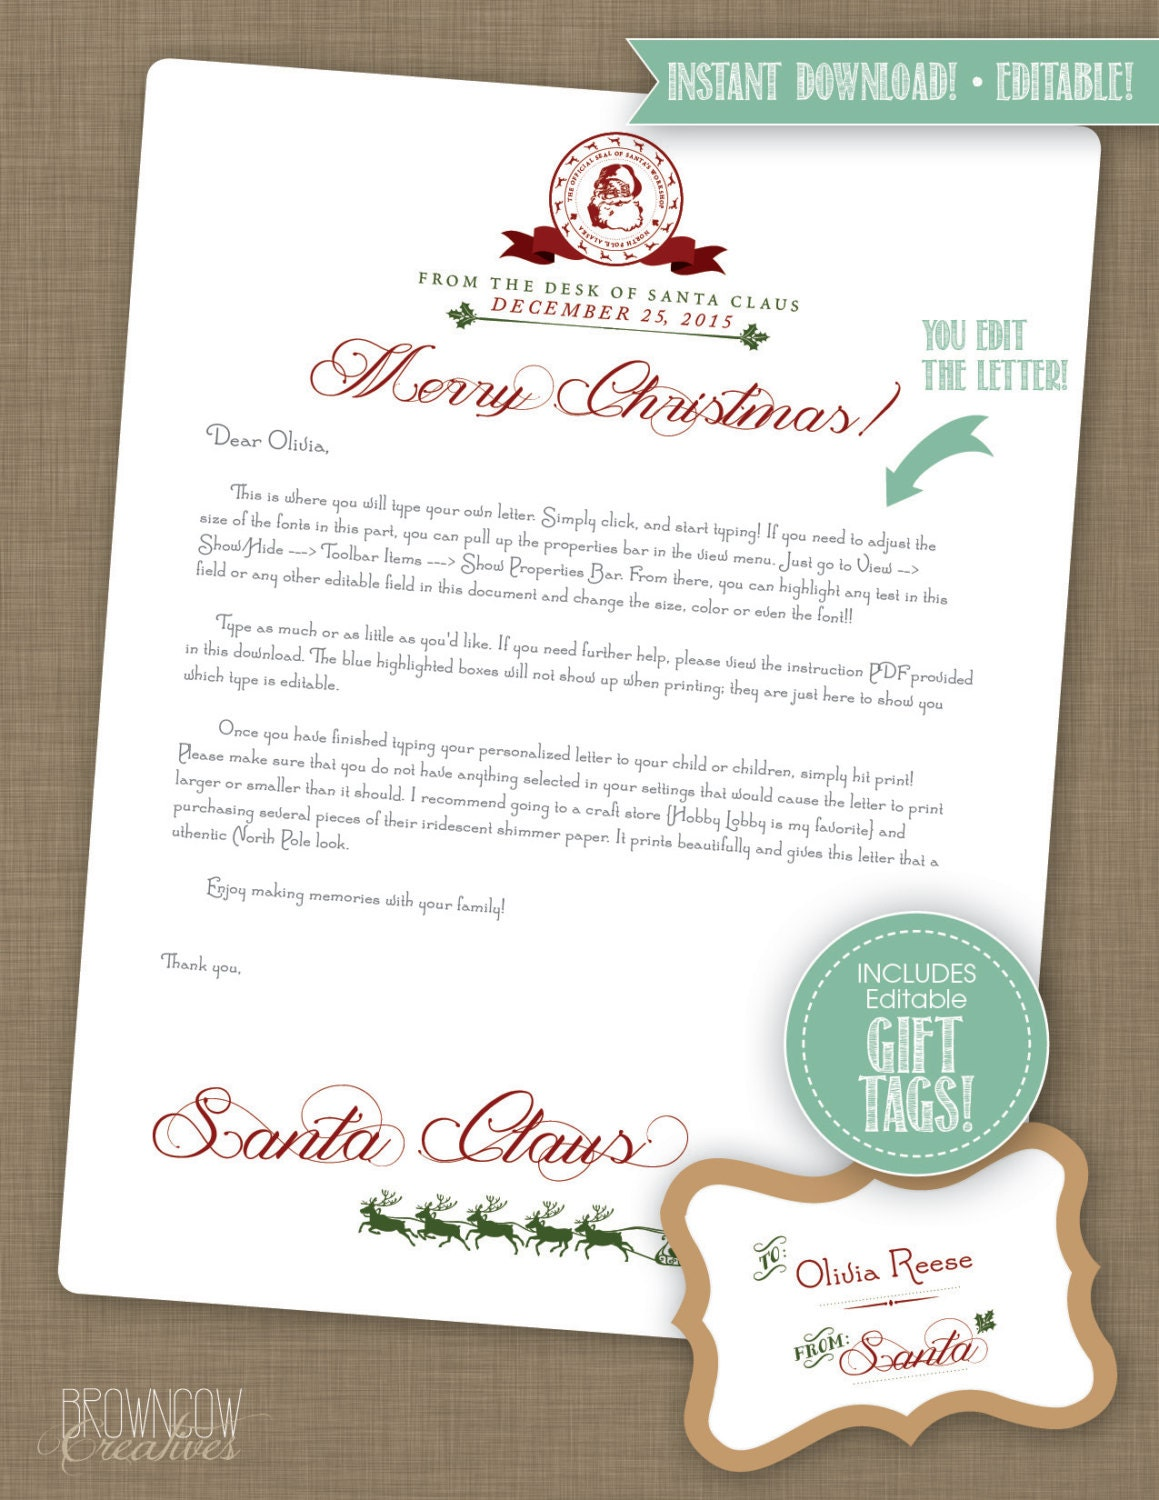 editable instant download letter from santa claus      santa